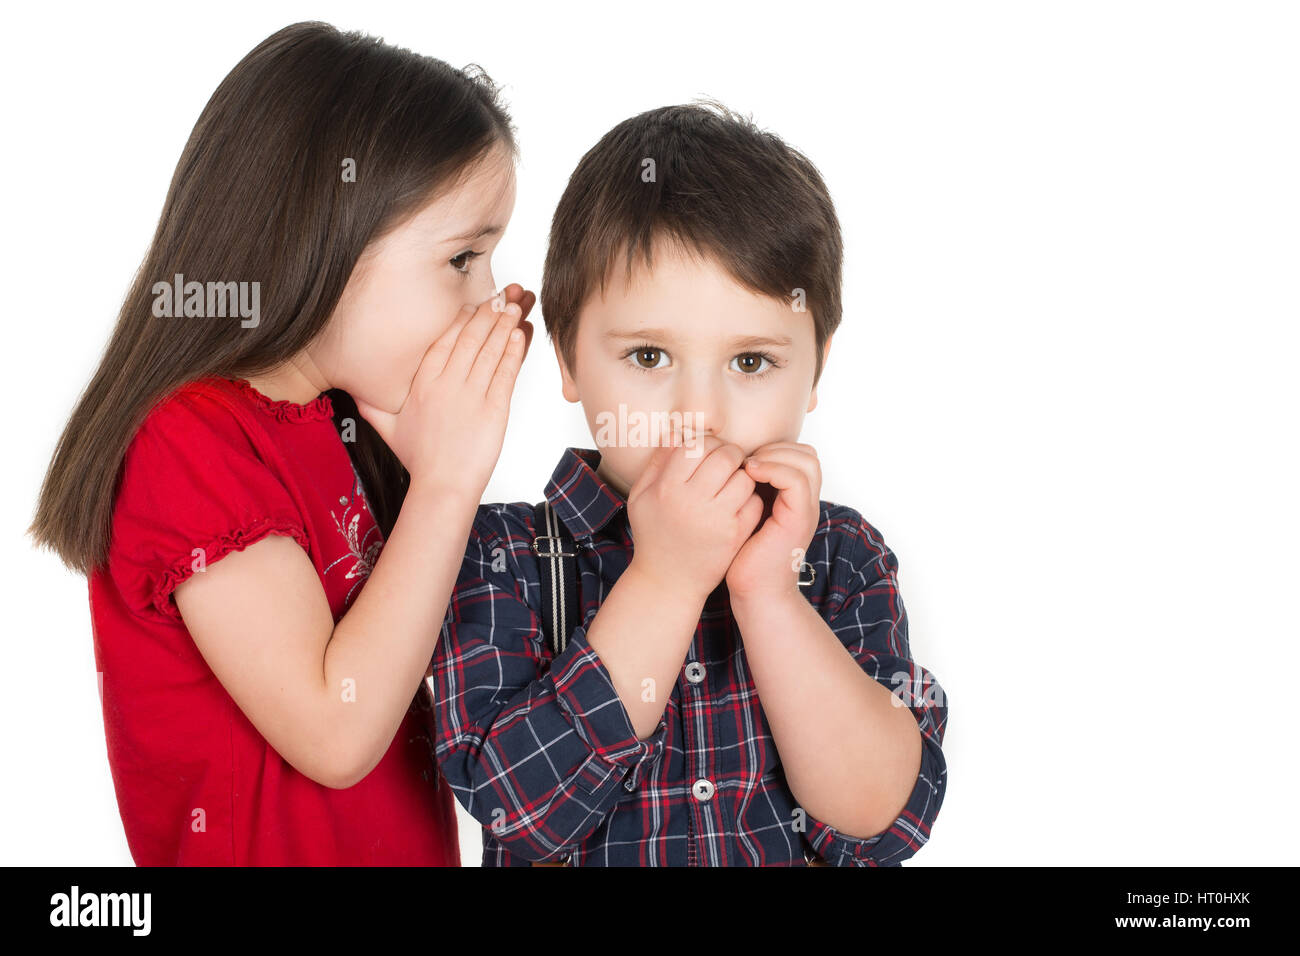 Girl whispering in a little boy`s ear. Boy covering his mouth with his hands. Scared or he cant believe. Isolated - Stock Image